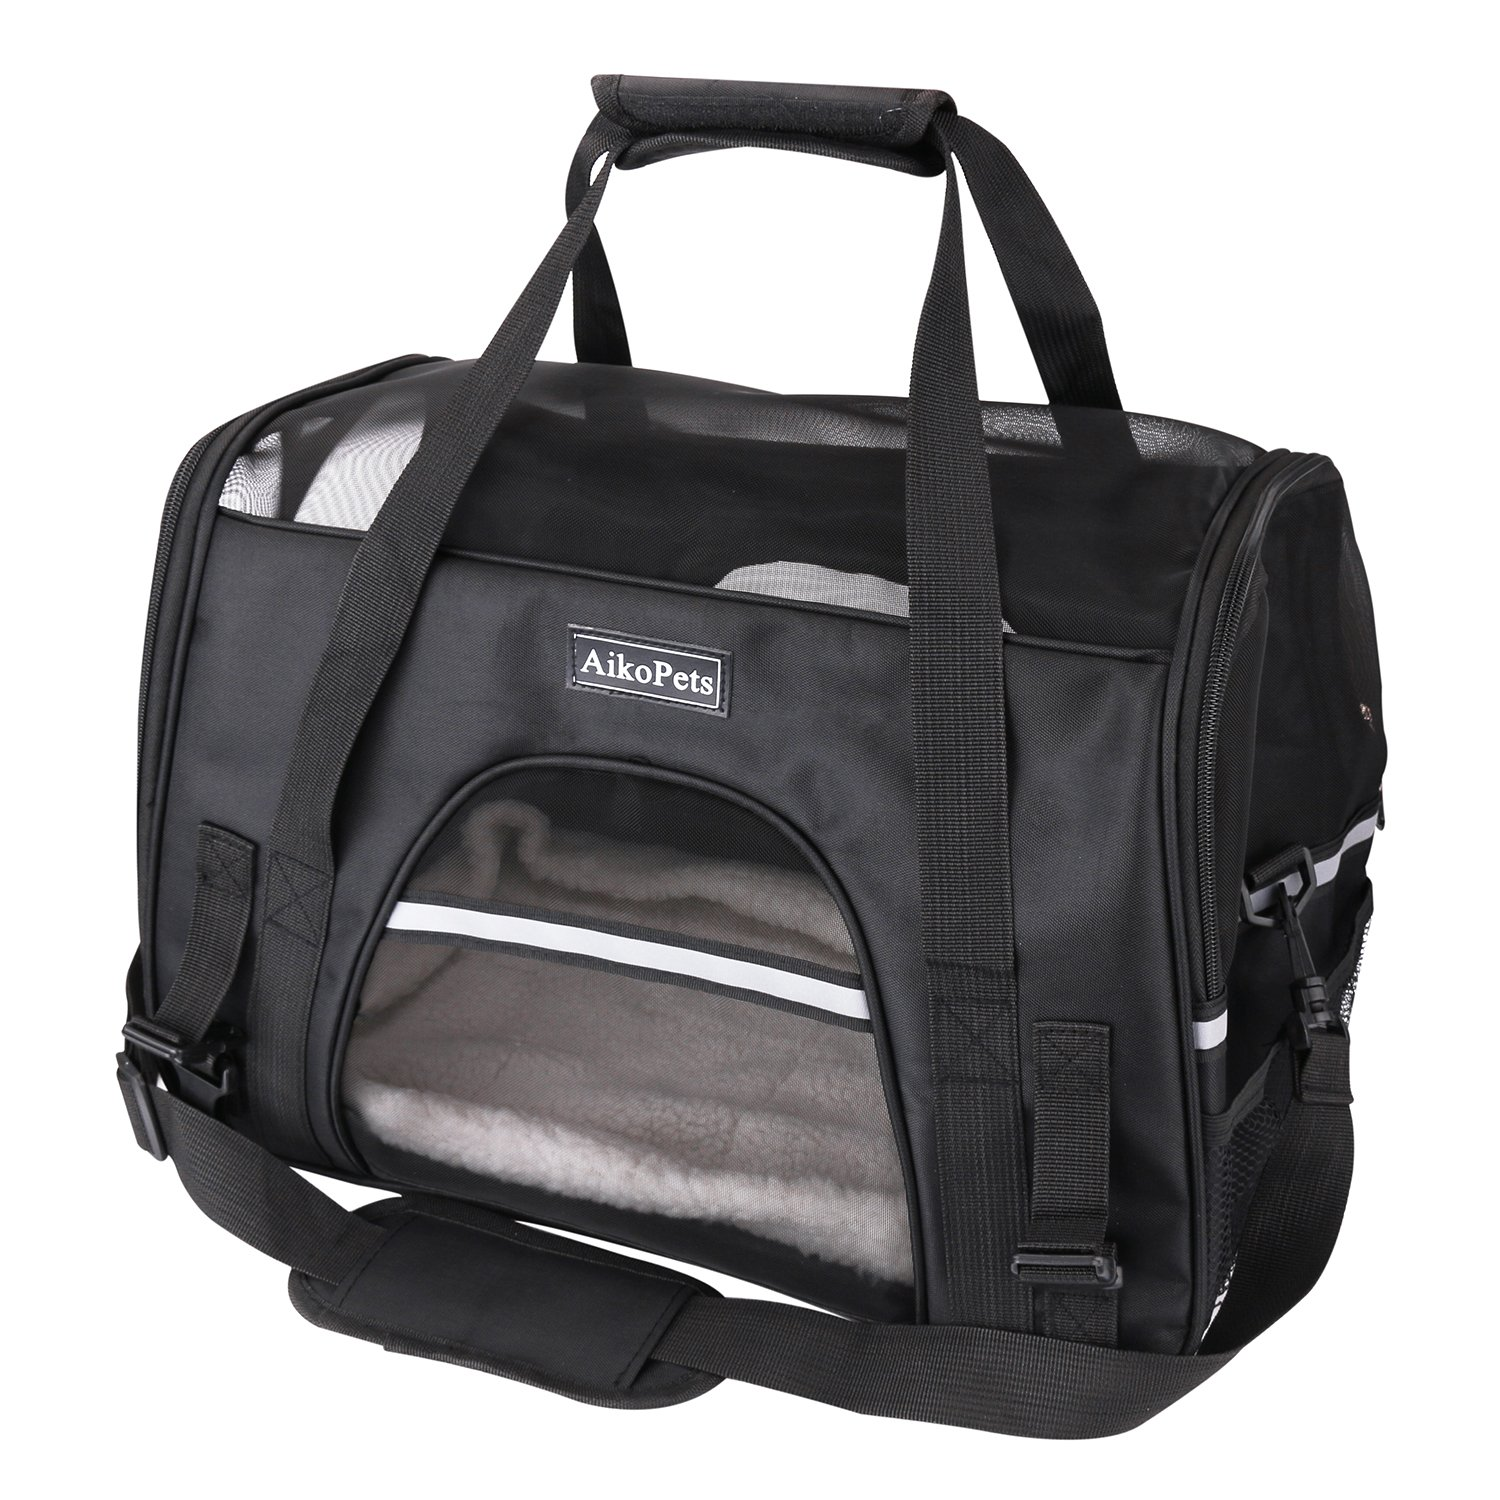 Cat Carrier, Airline Approved Pet Carrier for Medium Cat Travel Carrier Soft Sided Small Dog Carrier Fits Under Seat Small Animal Carrier Puppy Carrier with Fleece Bedding & Safety Lock, Medium Size by AikoPets (Image #1)